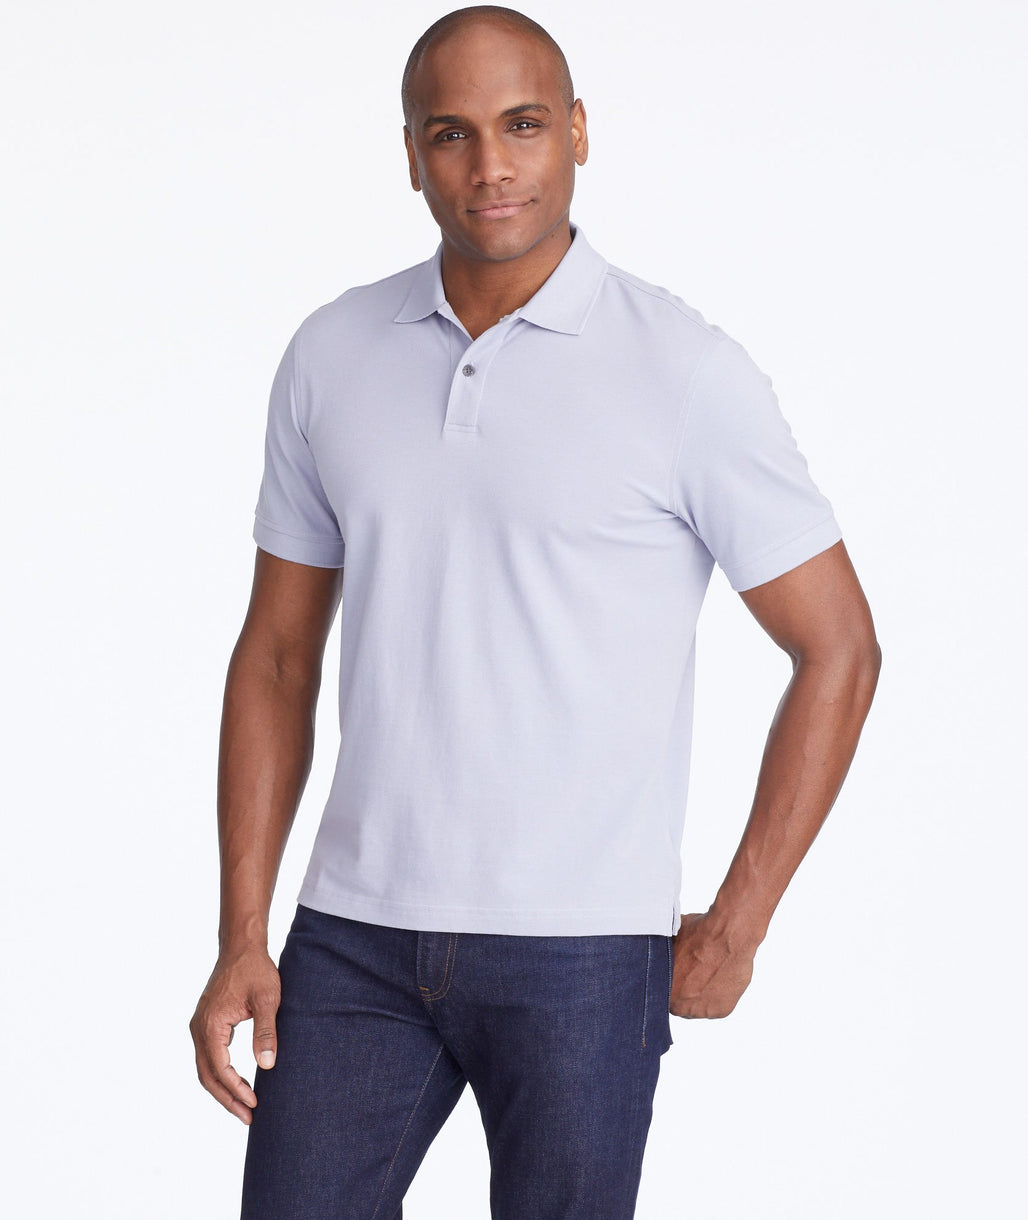 Model wearing a Light Grey Classic Pique Polo